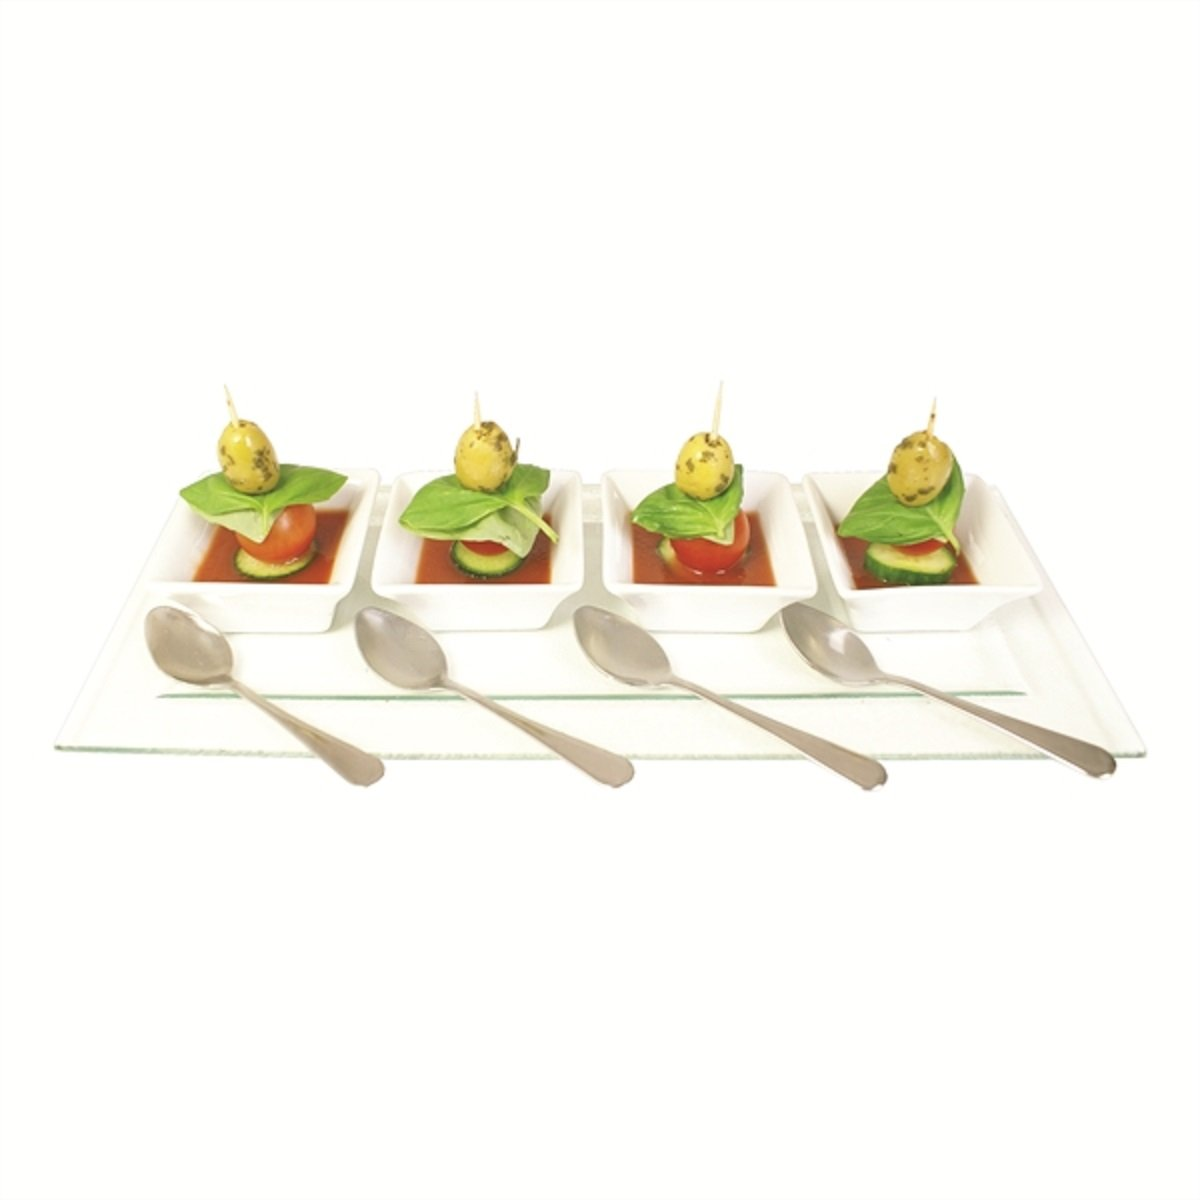 Dinner Party Presentation set of 4 Mini Square Bowls, with 4x spoons and Glass Serving Tray Zodiac